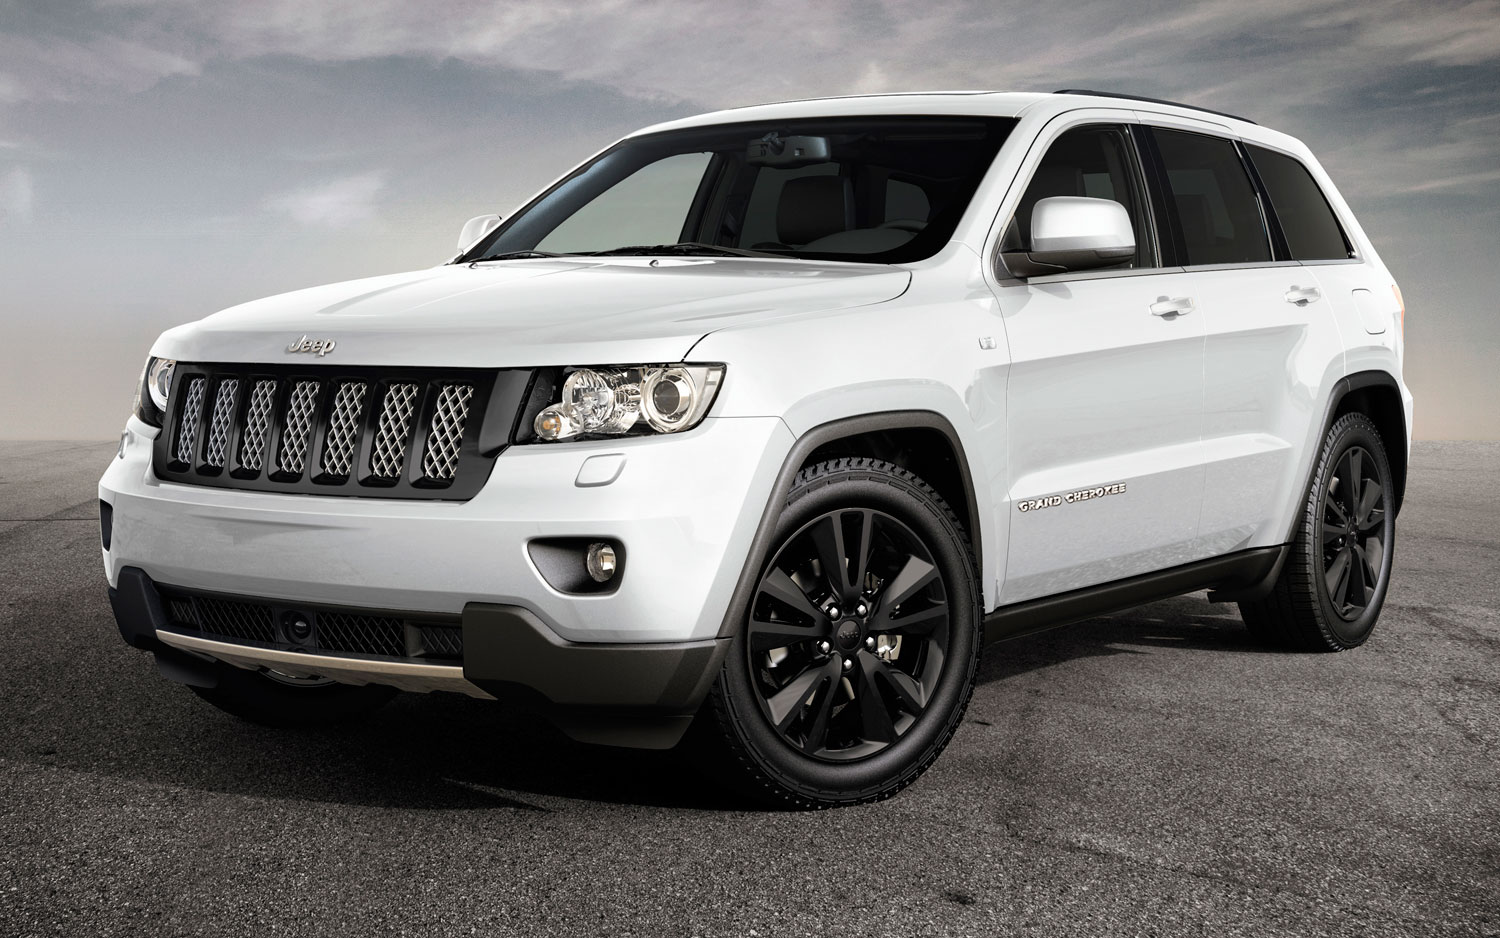 jeep grand cherokee pics #9